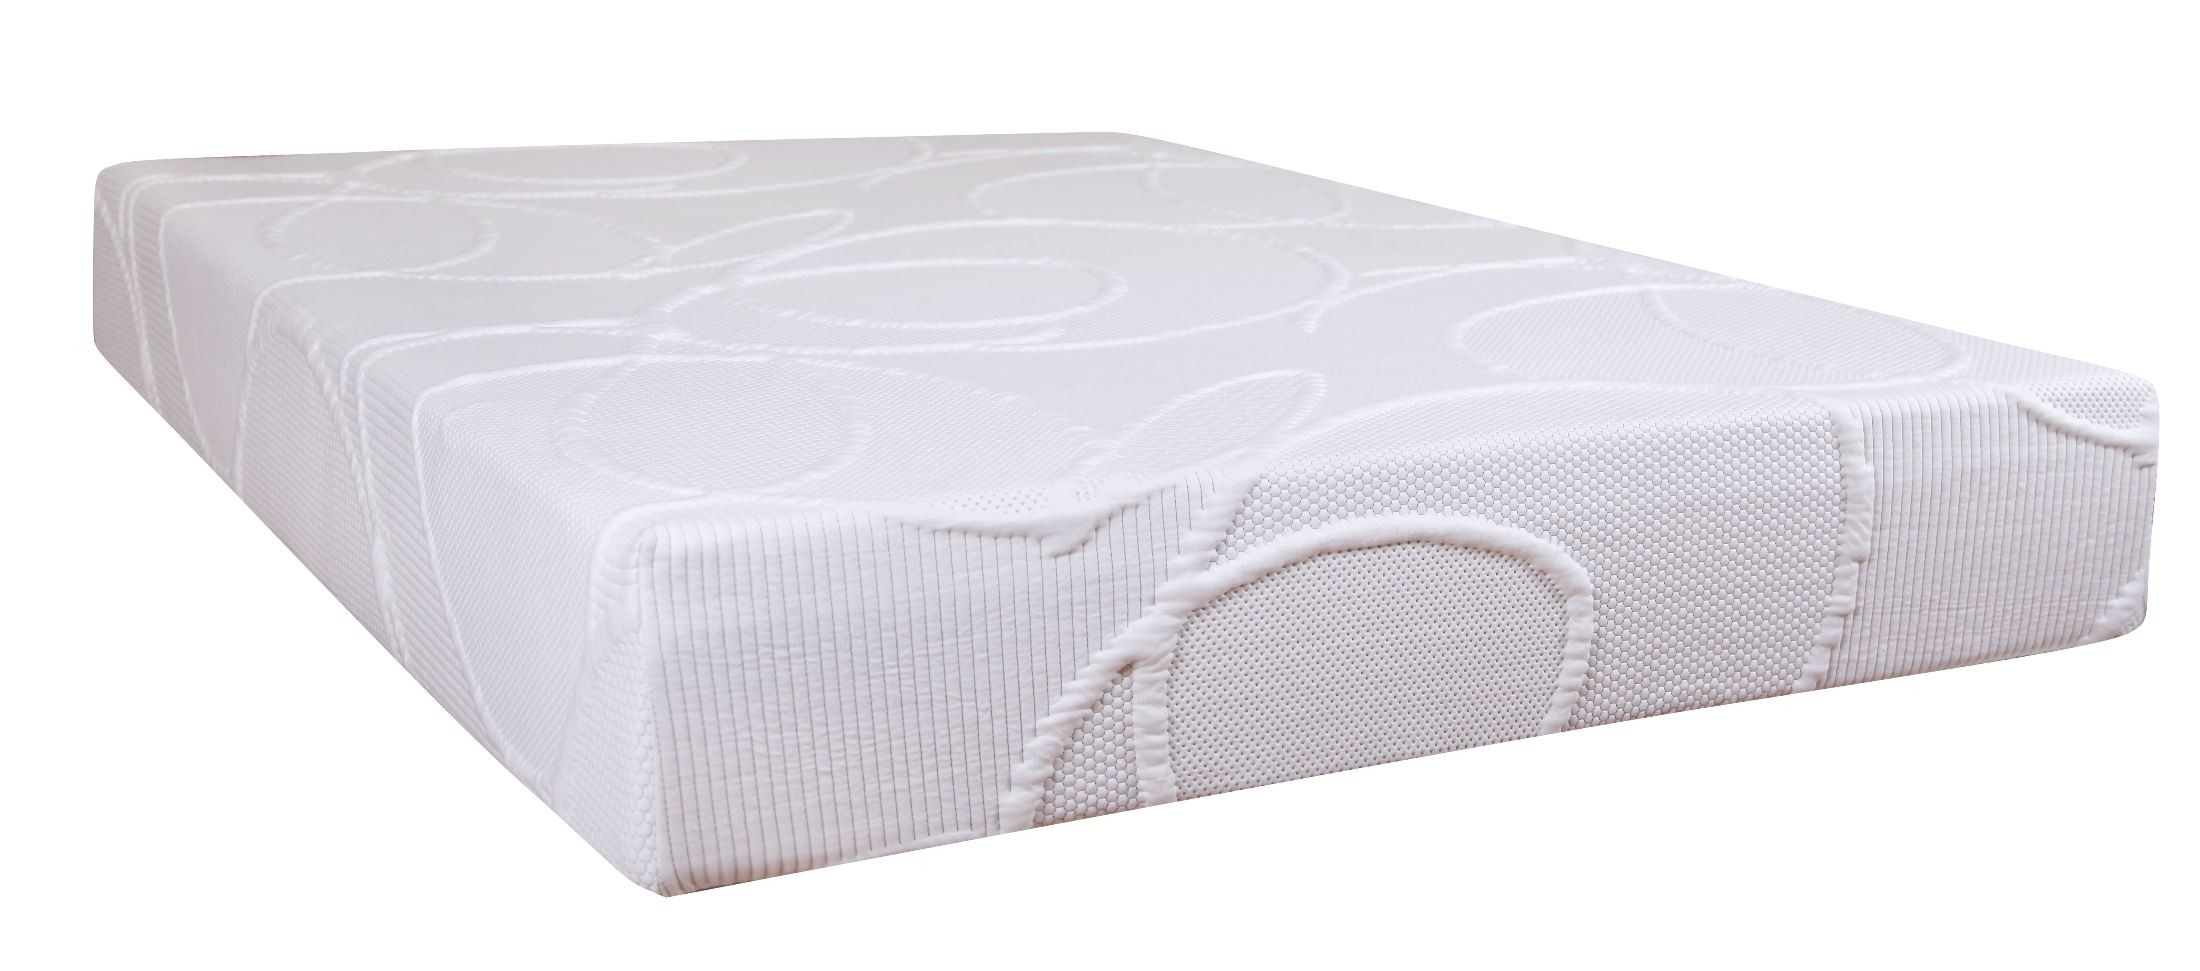 Polaris 10 Memory Foam Xl Twin Size Mattress From Klaussner Polaristxtmat Coleman Furniture